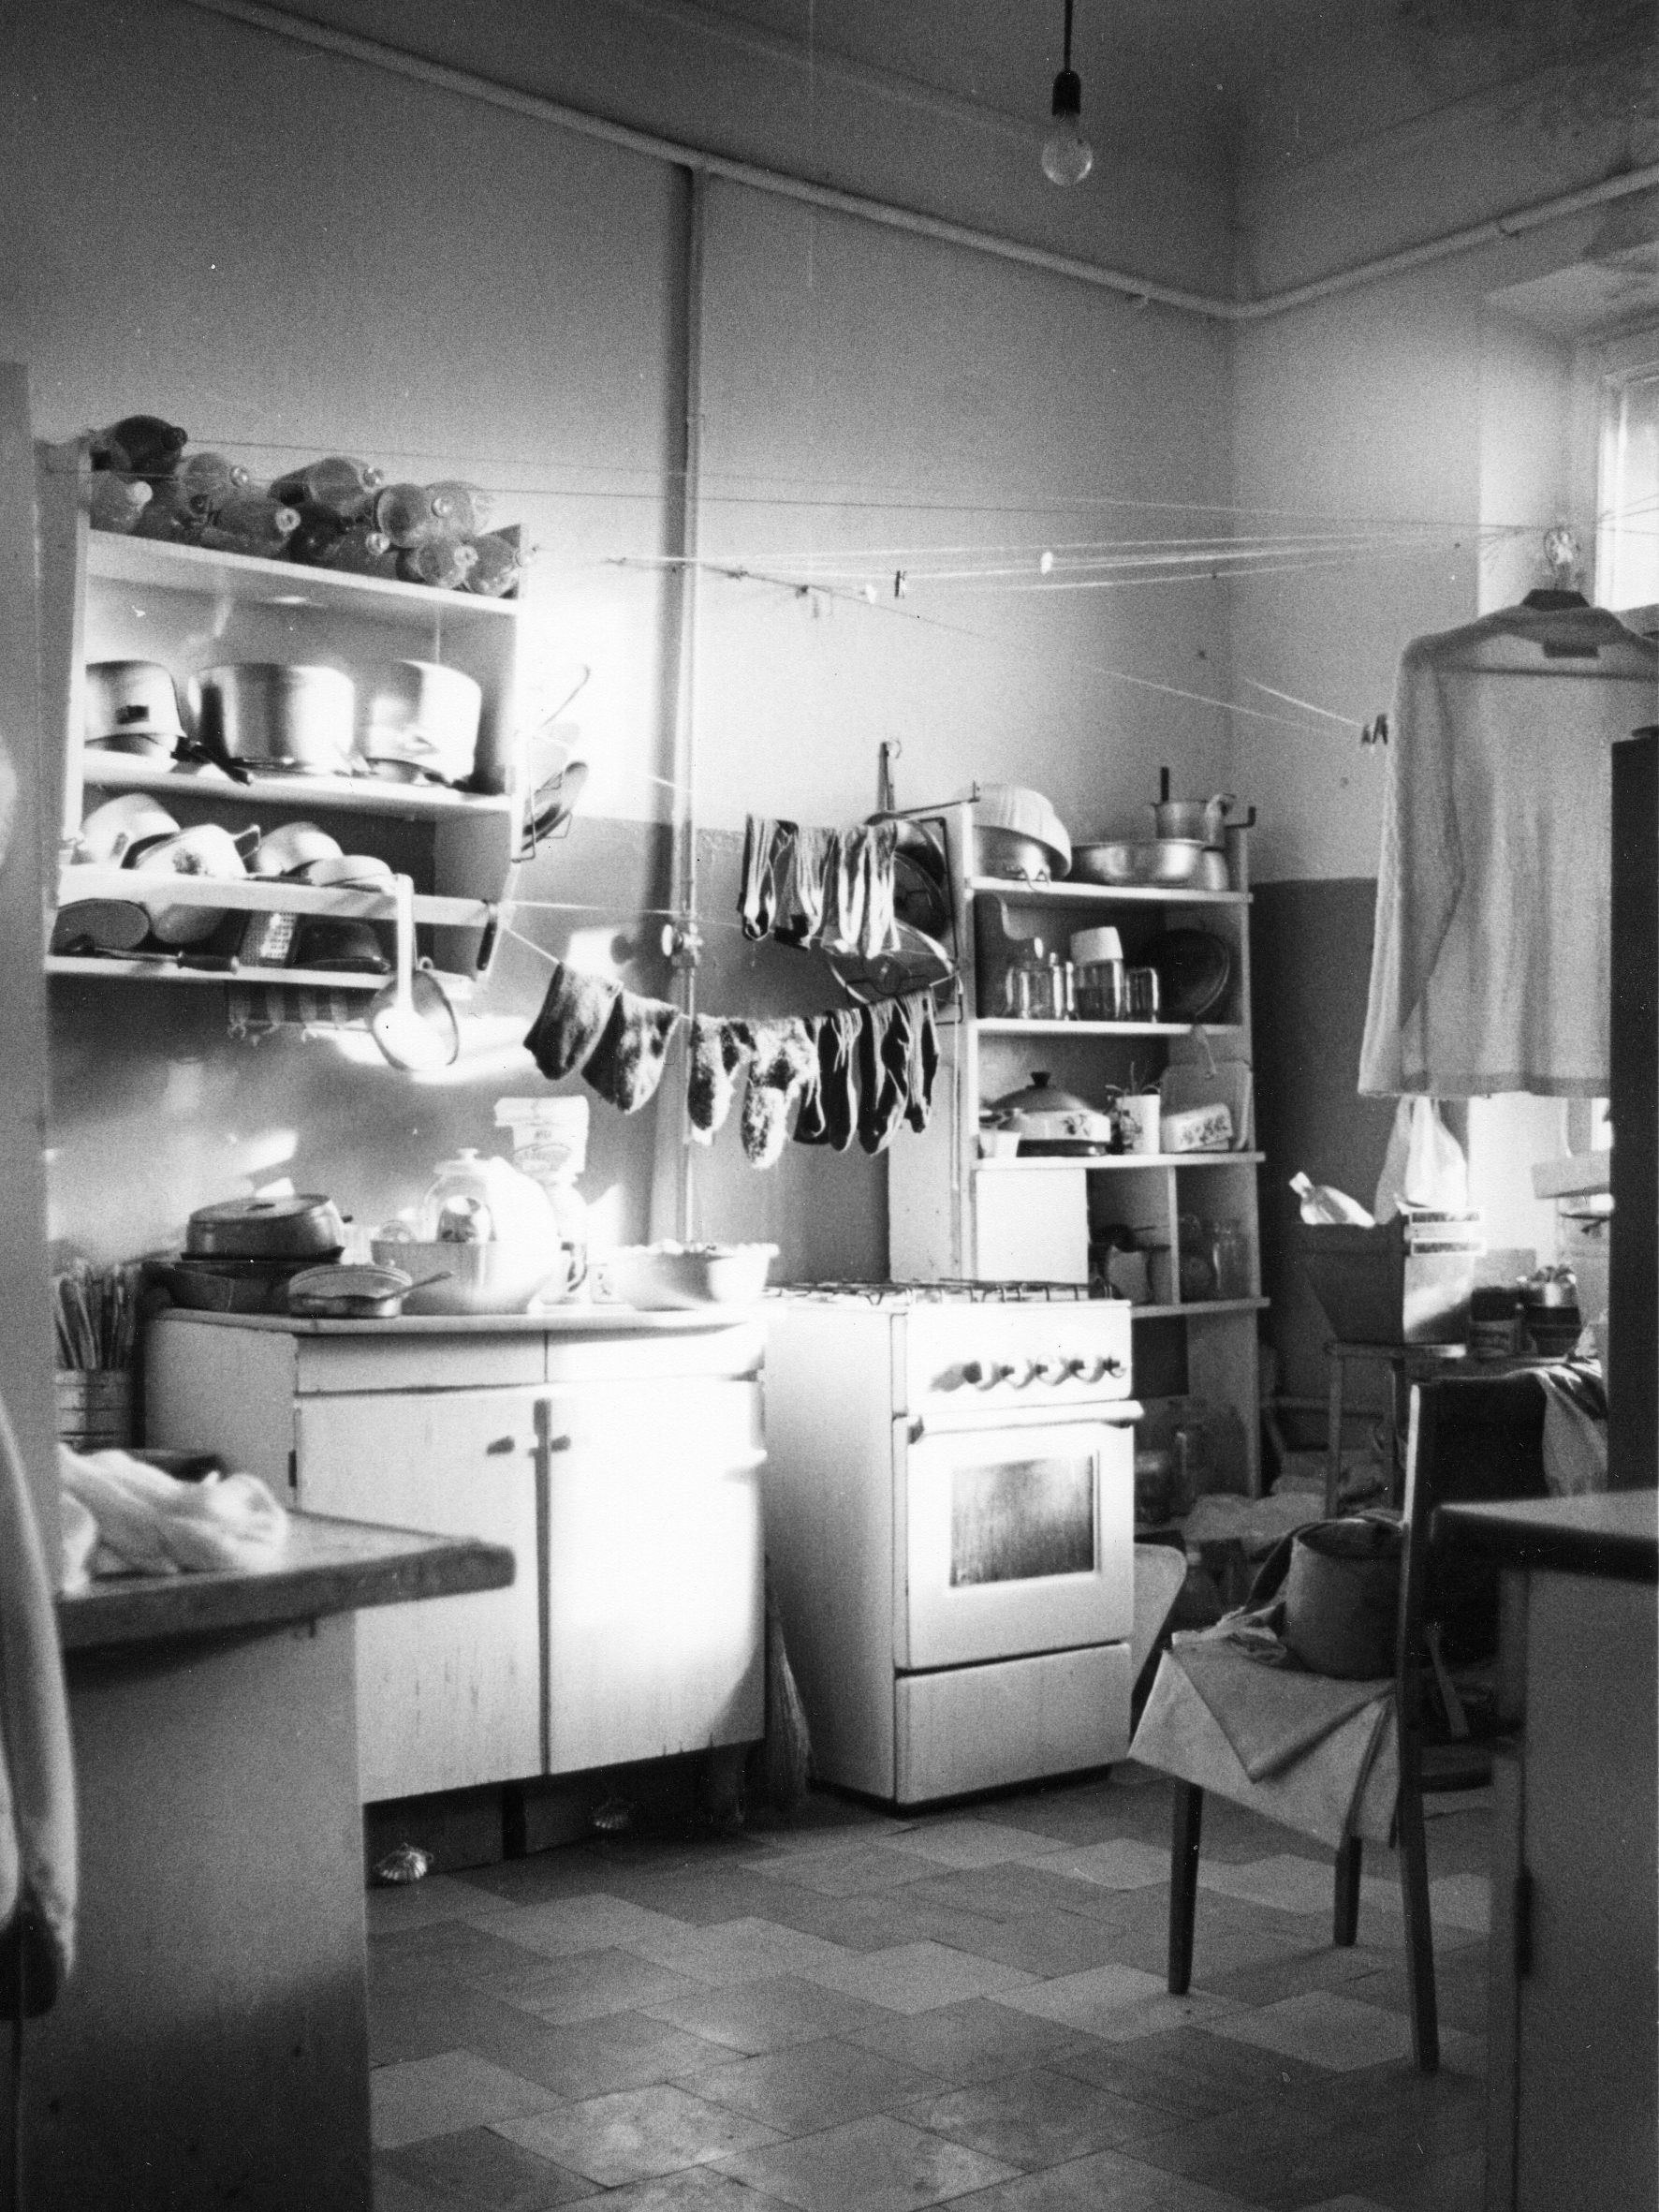 Laundry drying in a communal kitchen in Moscow. Photo: Courtesy of European University, St. Petersburg, Russia, Colgate University and Cornell University